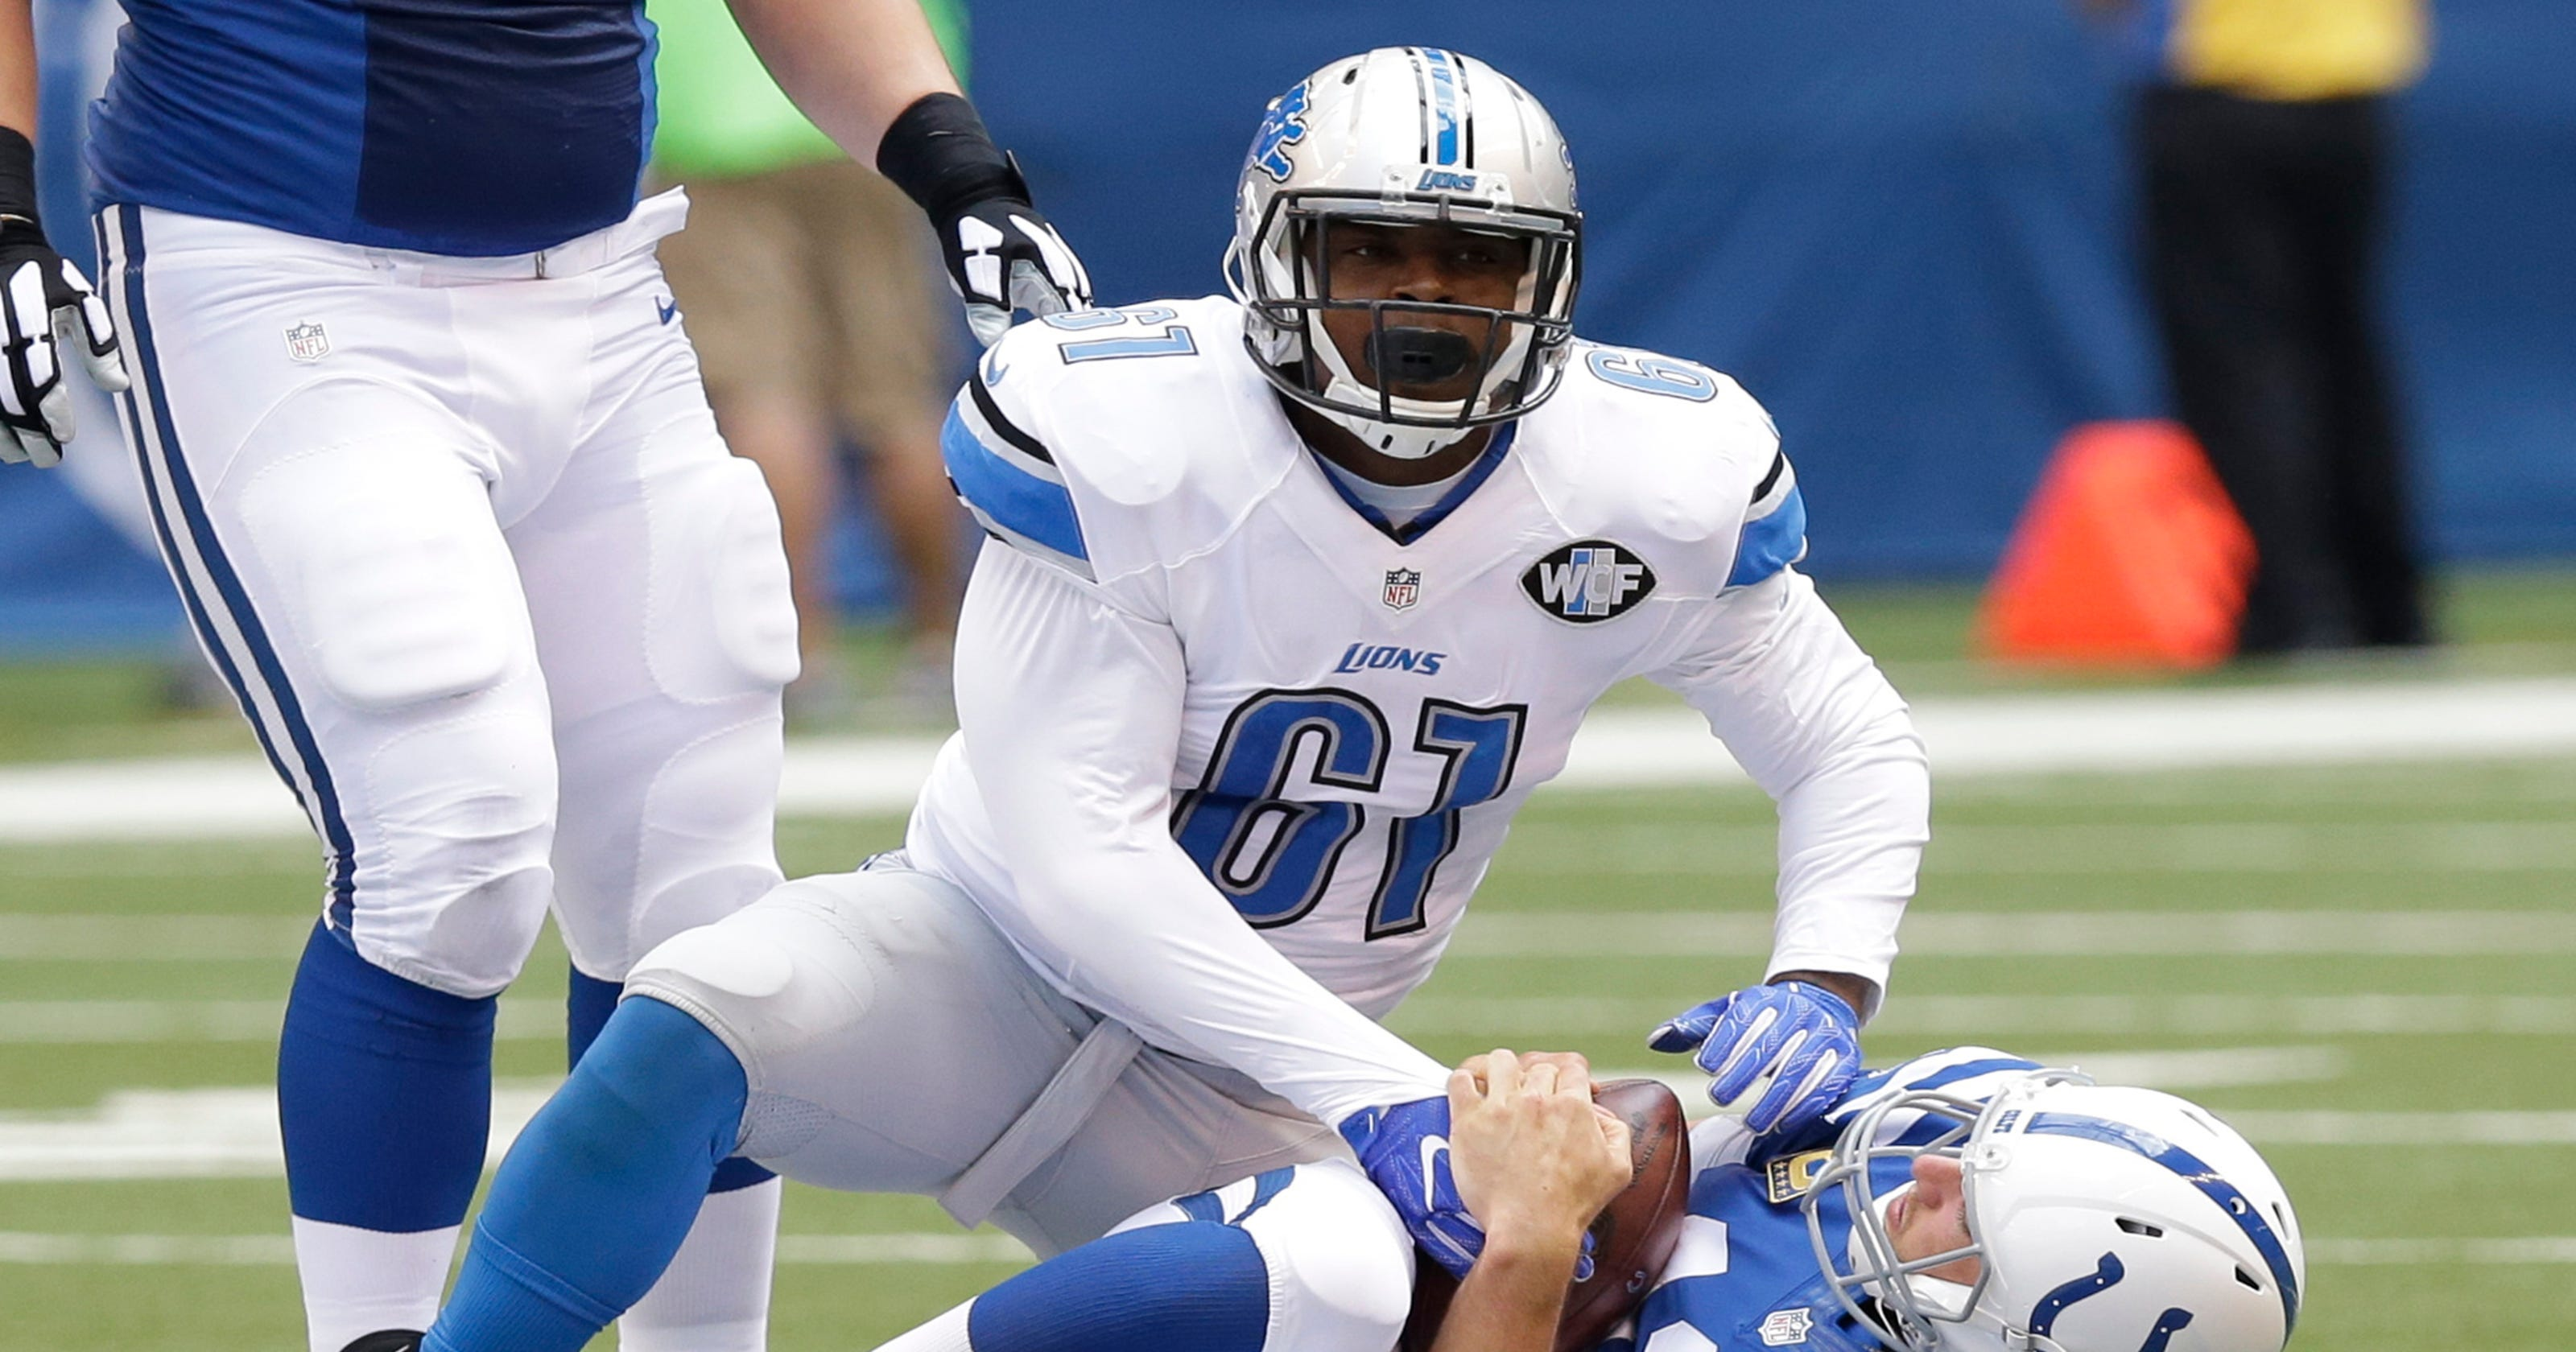 Kerry Hyder's journey to Detroit Lions roster wasn't easy